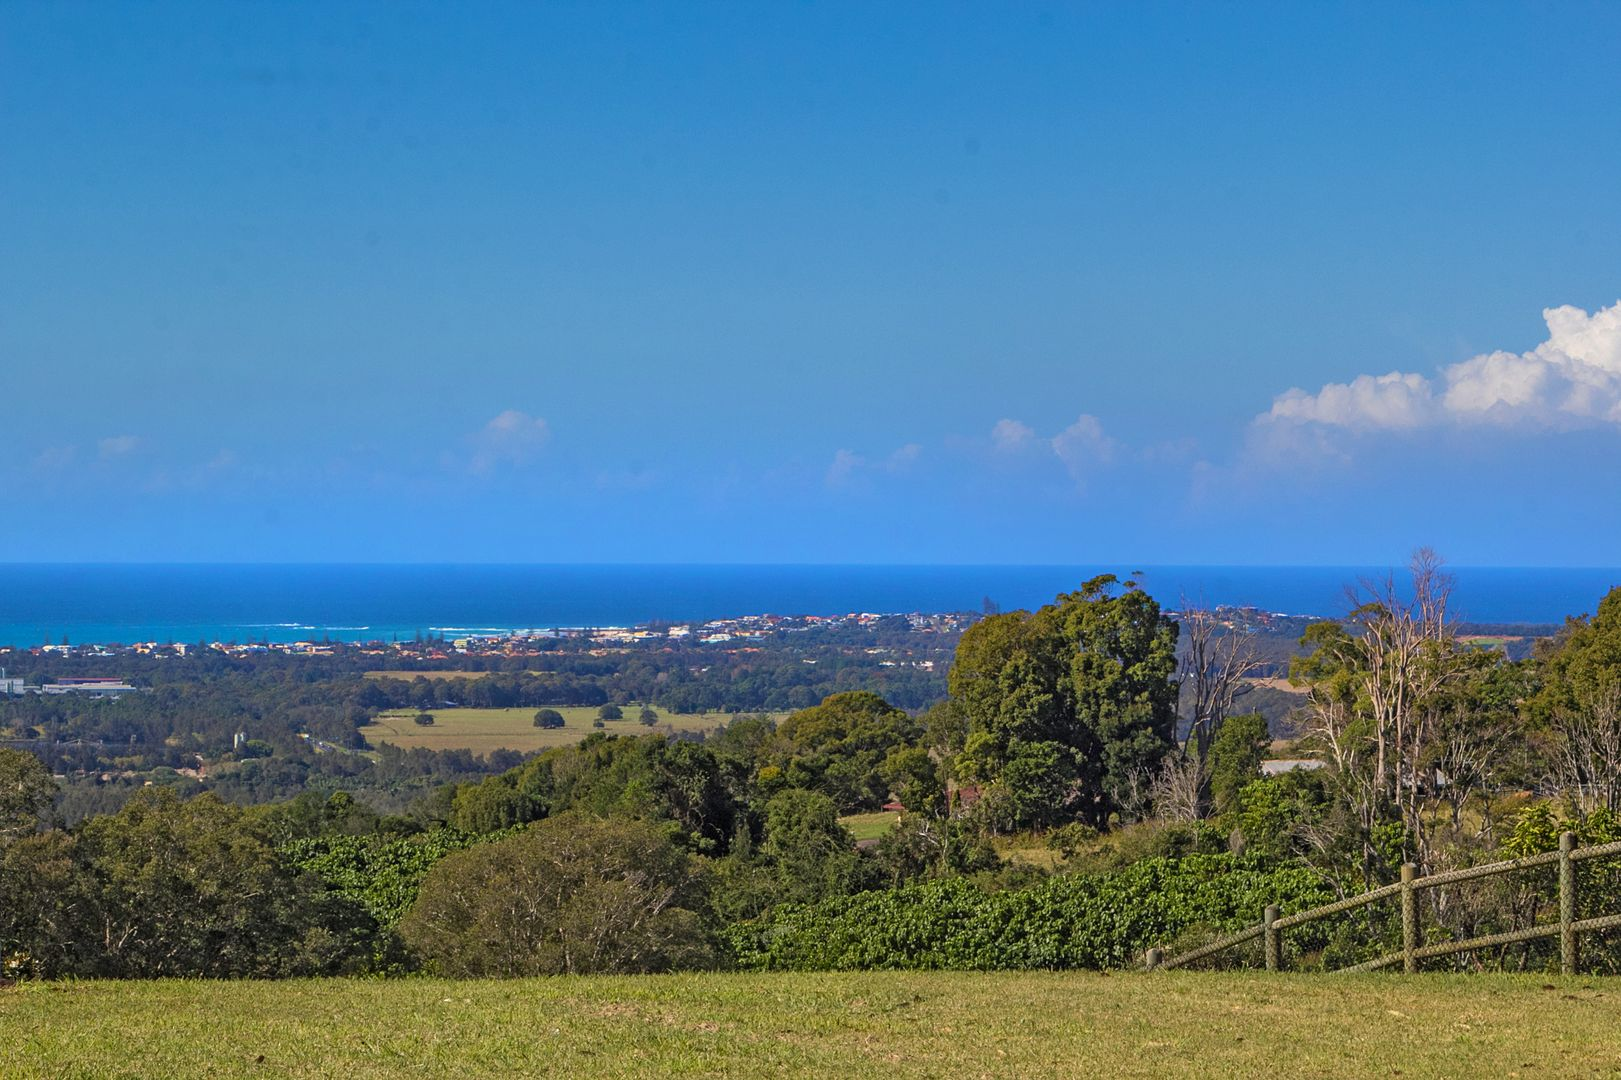 Lot 30, 6 Sunnycrest Drive, Terranora NSW 2486, Image 2